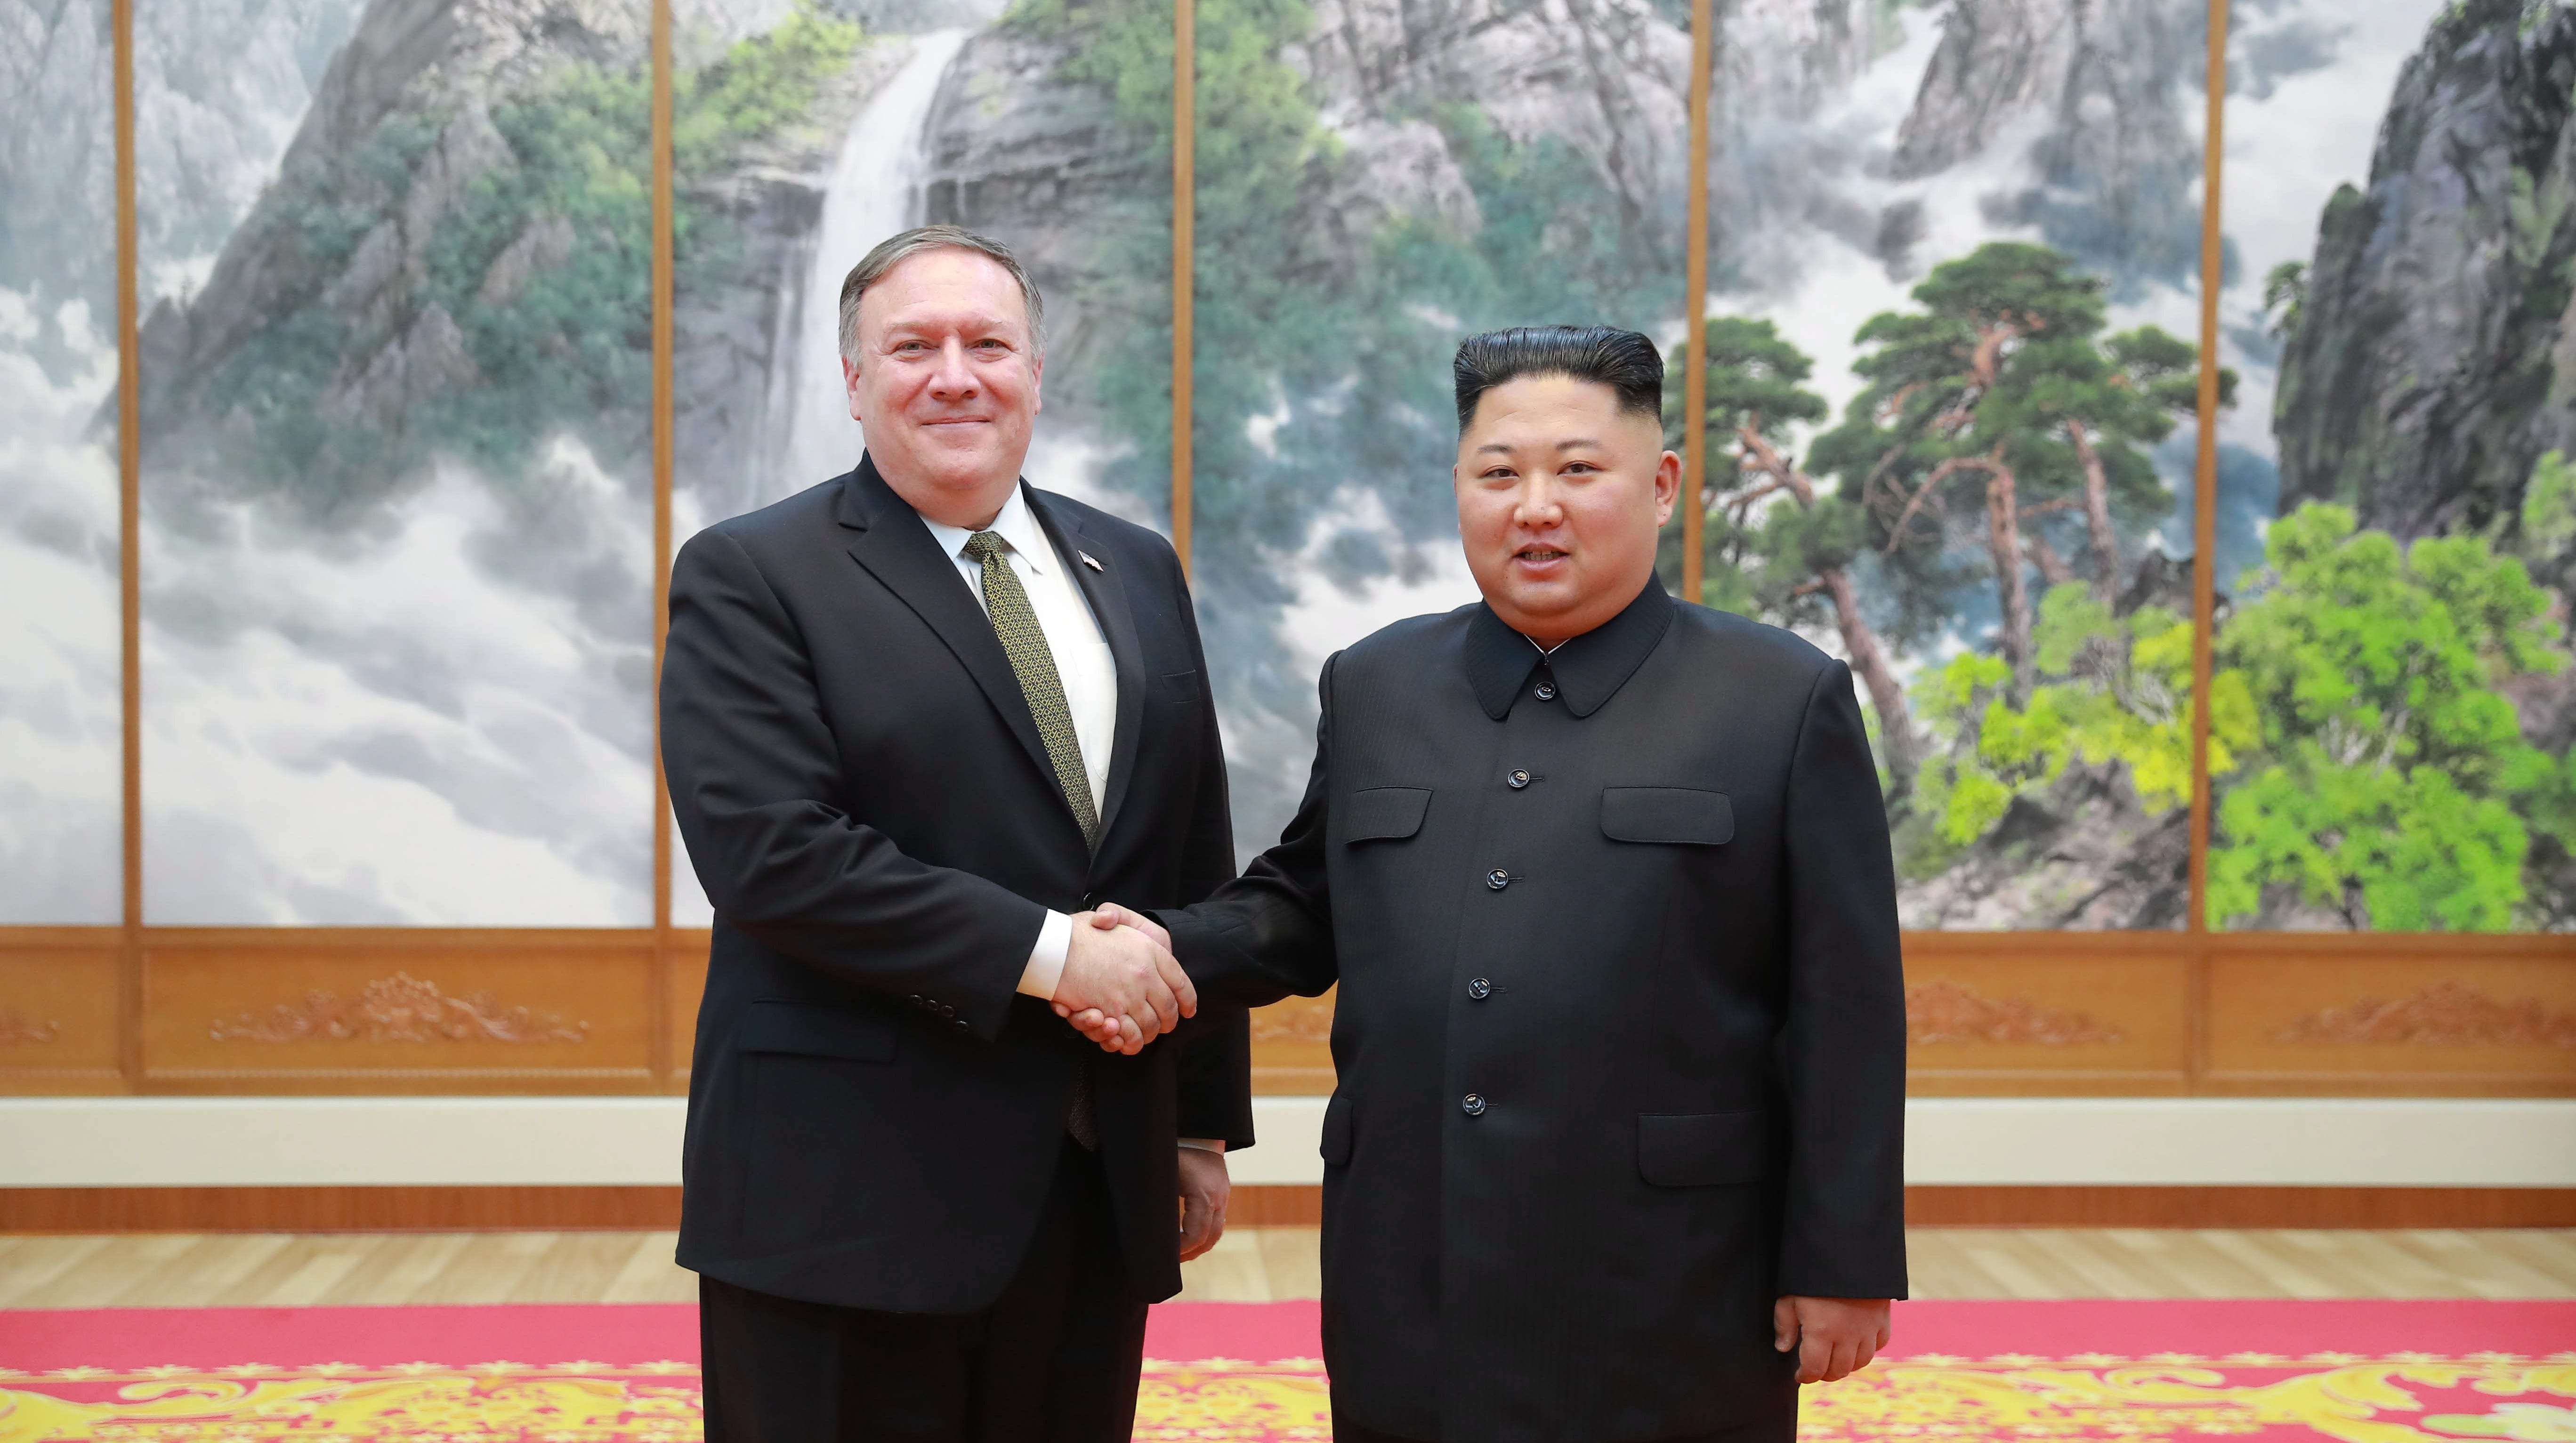 A photo released by the official North Korean Central News Agency (KCNA), the state news agency of North Korea, shows North Korean leader Kim Jong-un (R) shaking hands with United States Secretary of State Mike Pompeo (L) during their meeting in Pyongyang, North Korea, Oct. 7 October 2018.